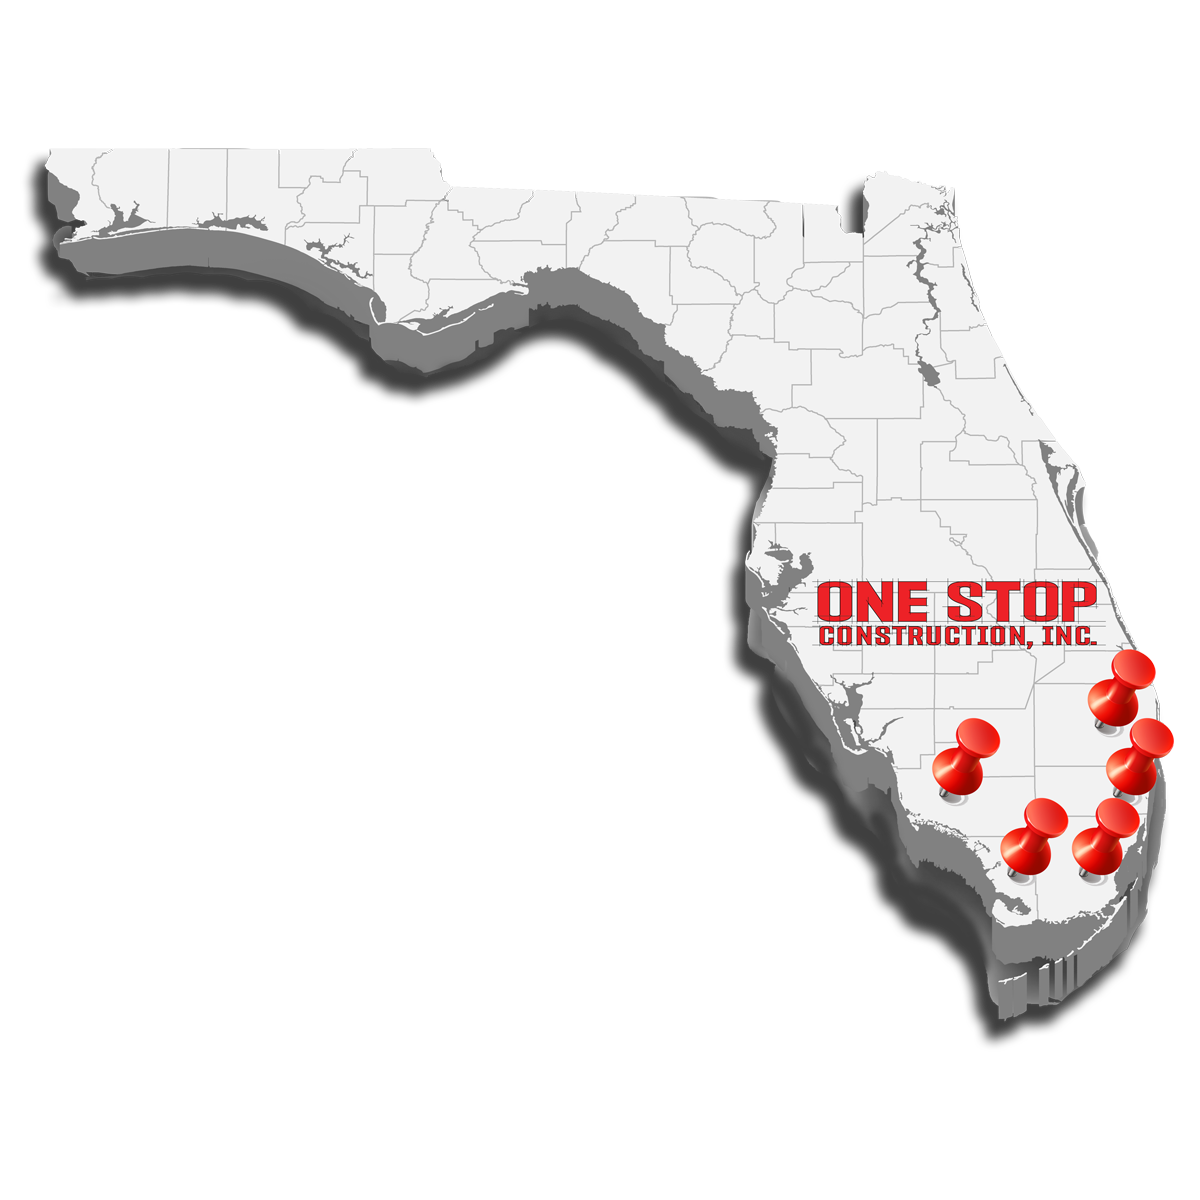 Map Of Areas Served in Florida